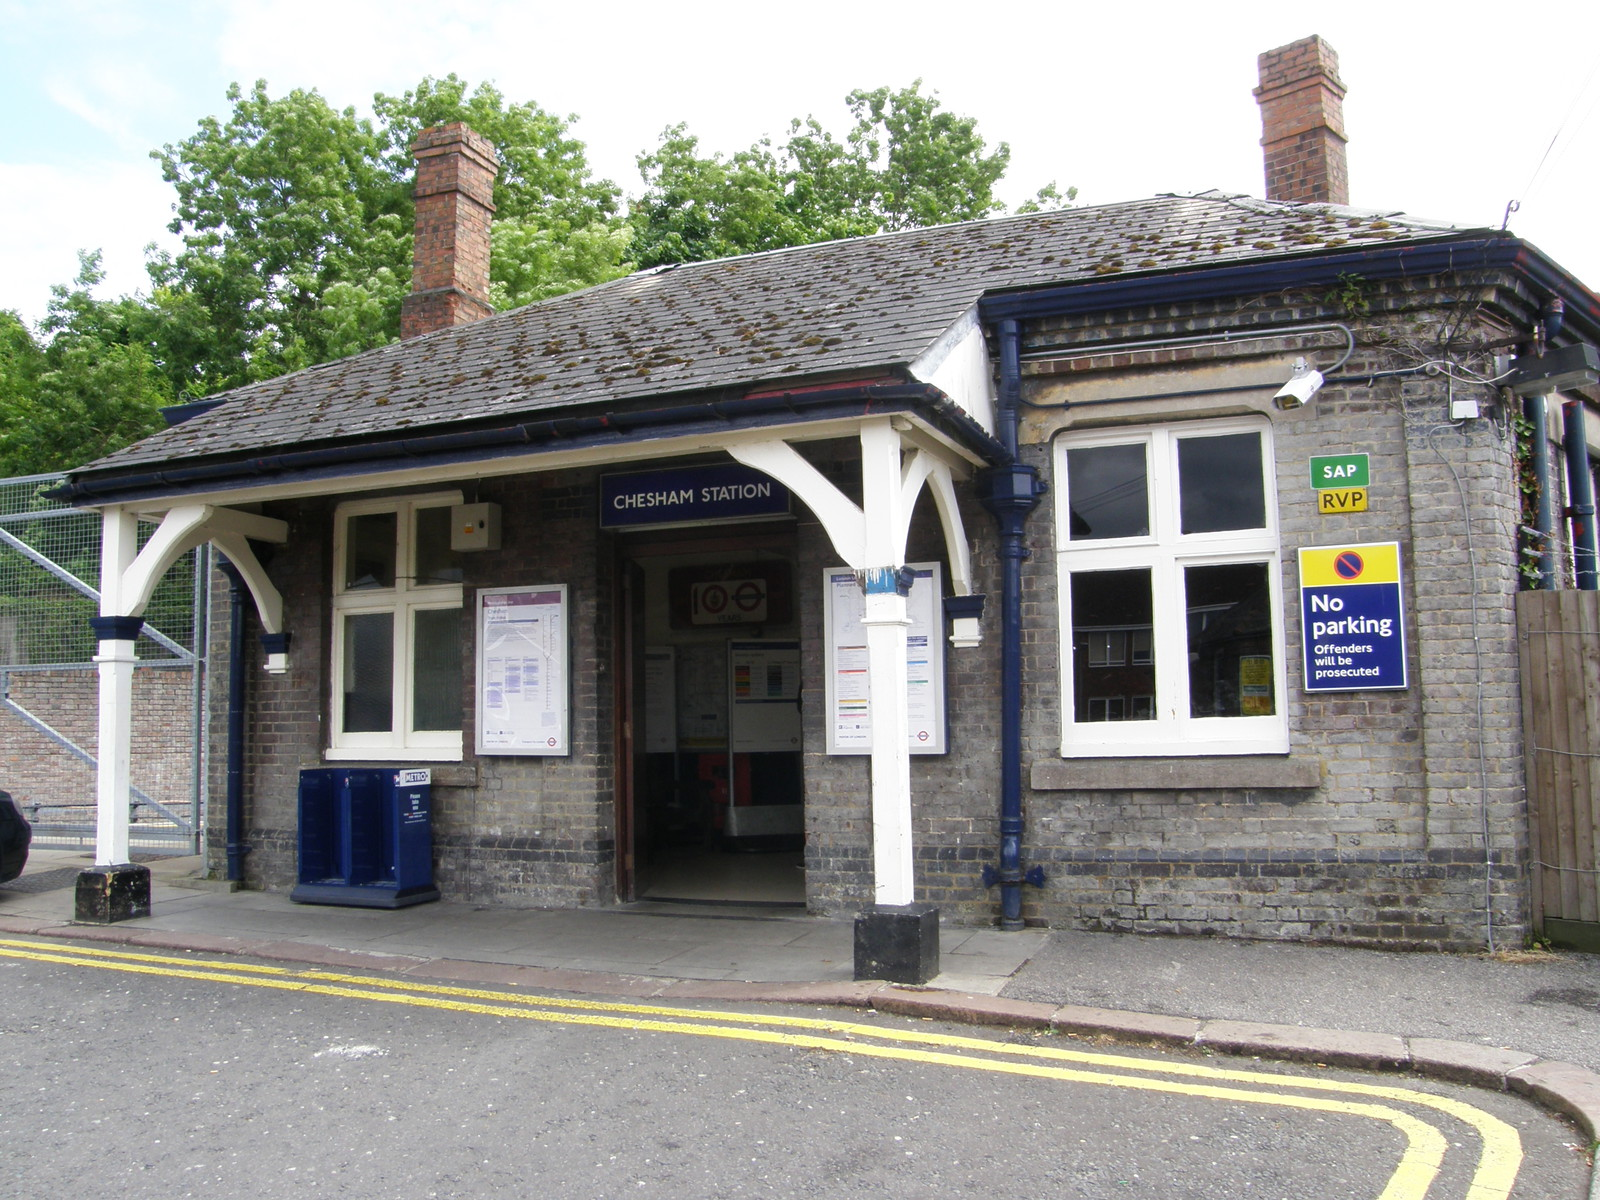 Chesham station